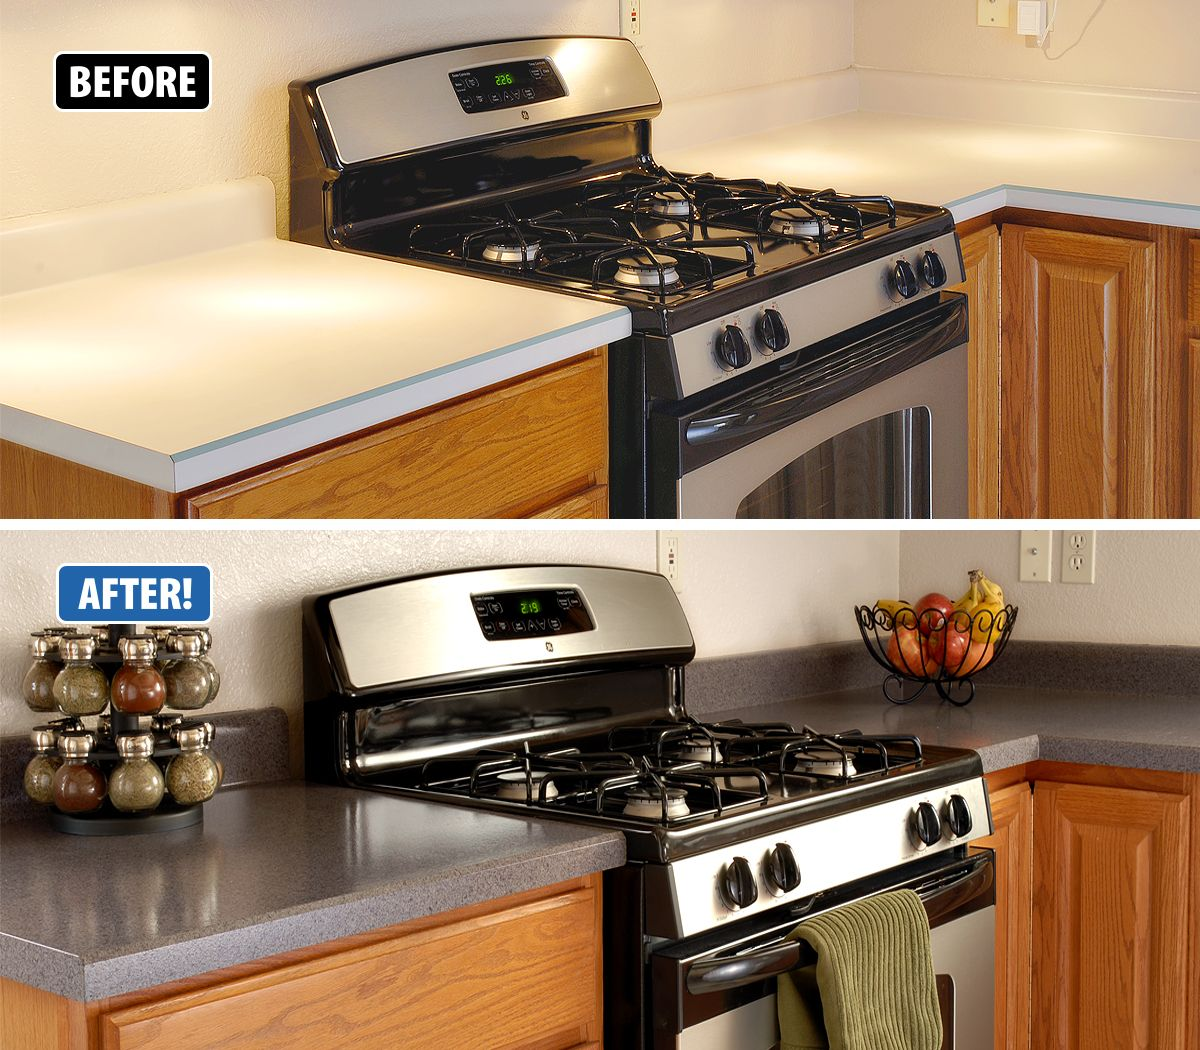 Kitchen Countertops Kinds: We Get All Kinds Of Calls From Customers With Damaged Countertops, Customers That Need To Update